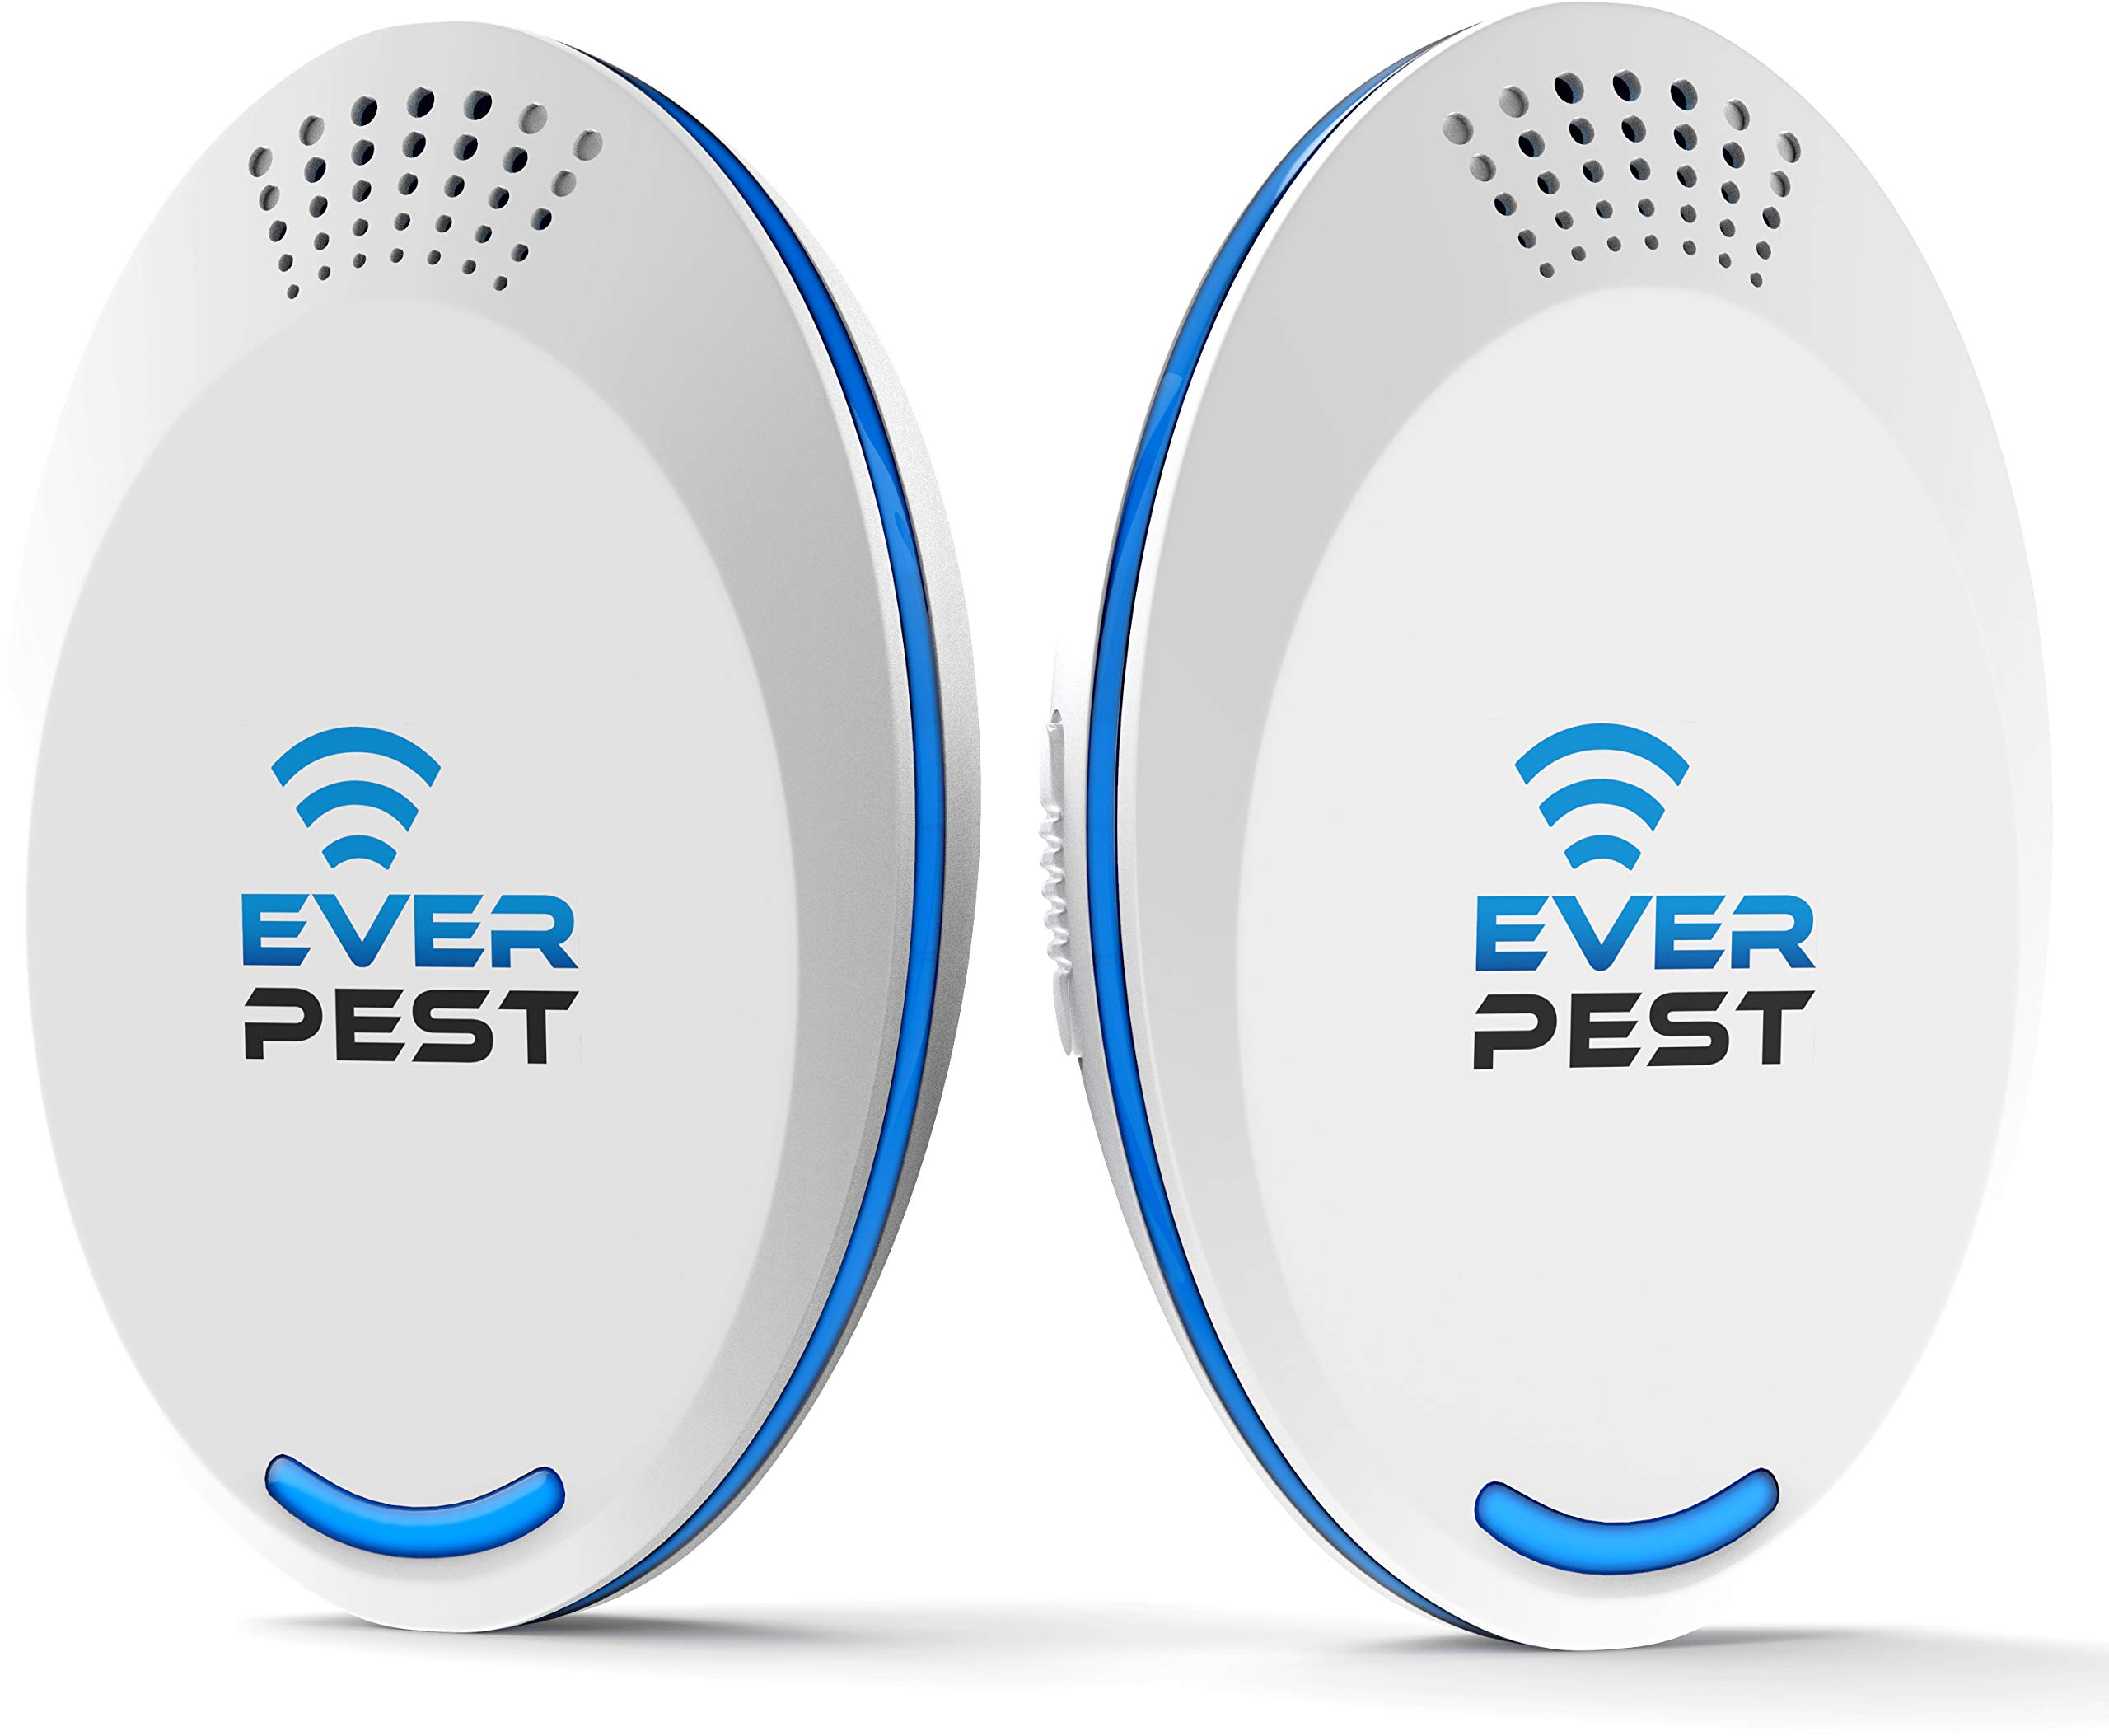 BRISON Ultrasonic Pest Repellent Control 2019 (2-Pack), Plug in Home, Flea, Rats, Roaches, Cockroaches, Fruit Fly, Rodent, Insect, Indoor and Outdoor Repeller, Get Rid of Mosquito, Ants by BRISON